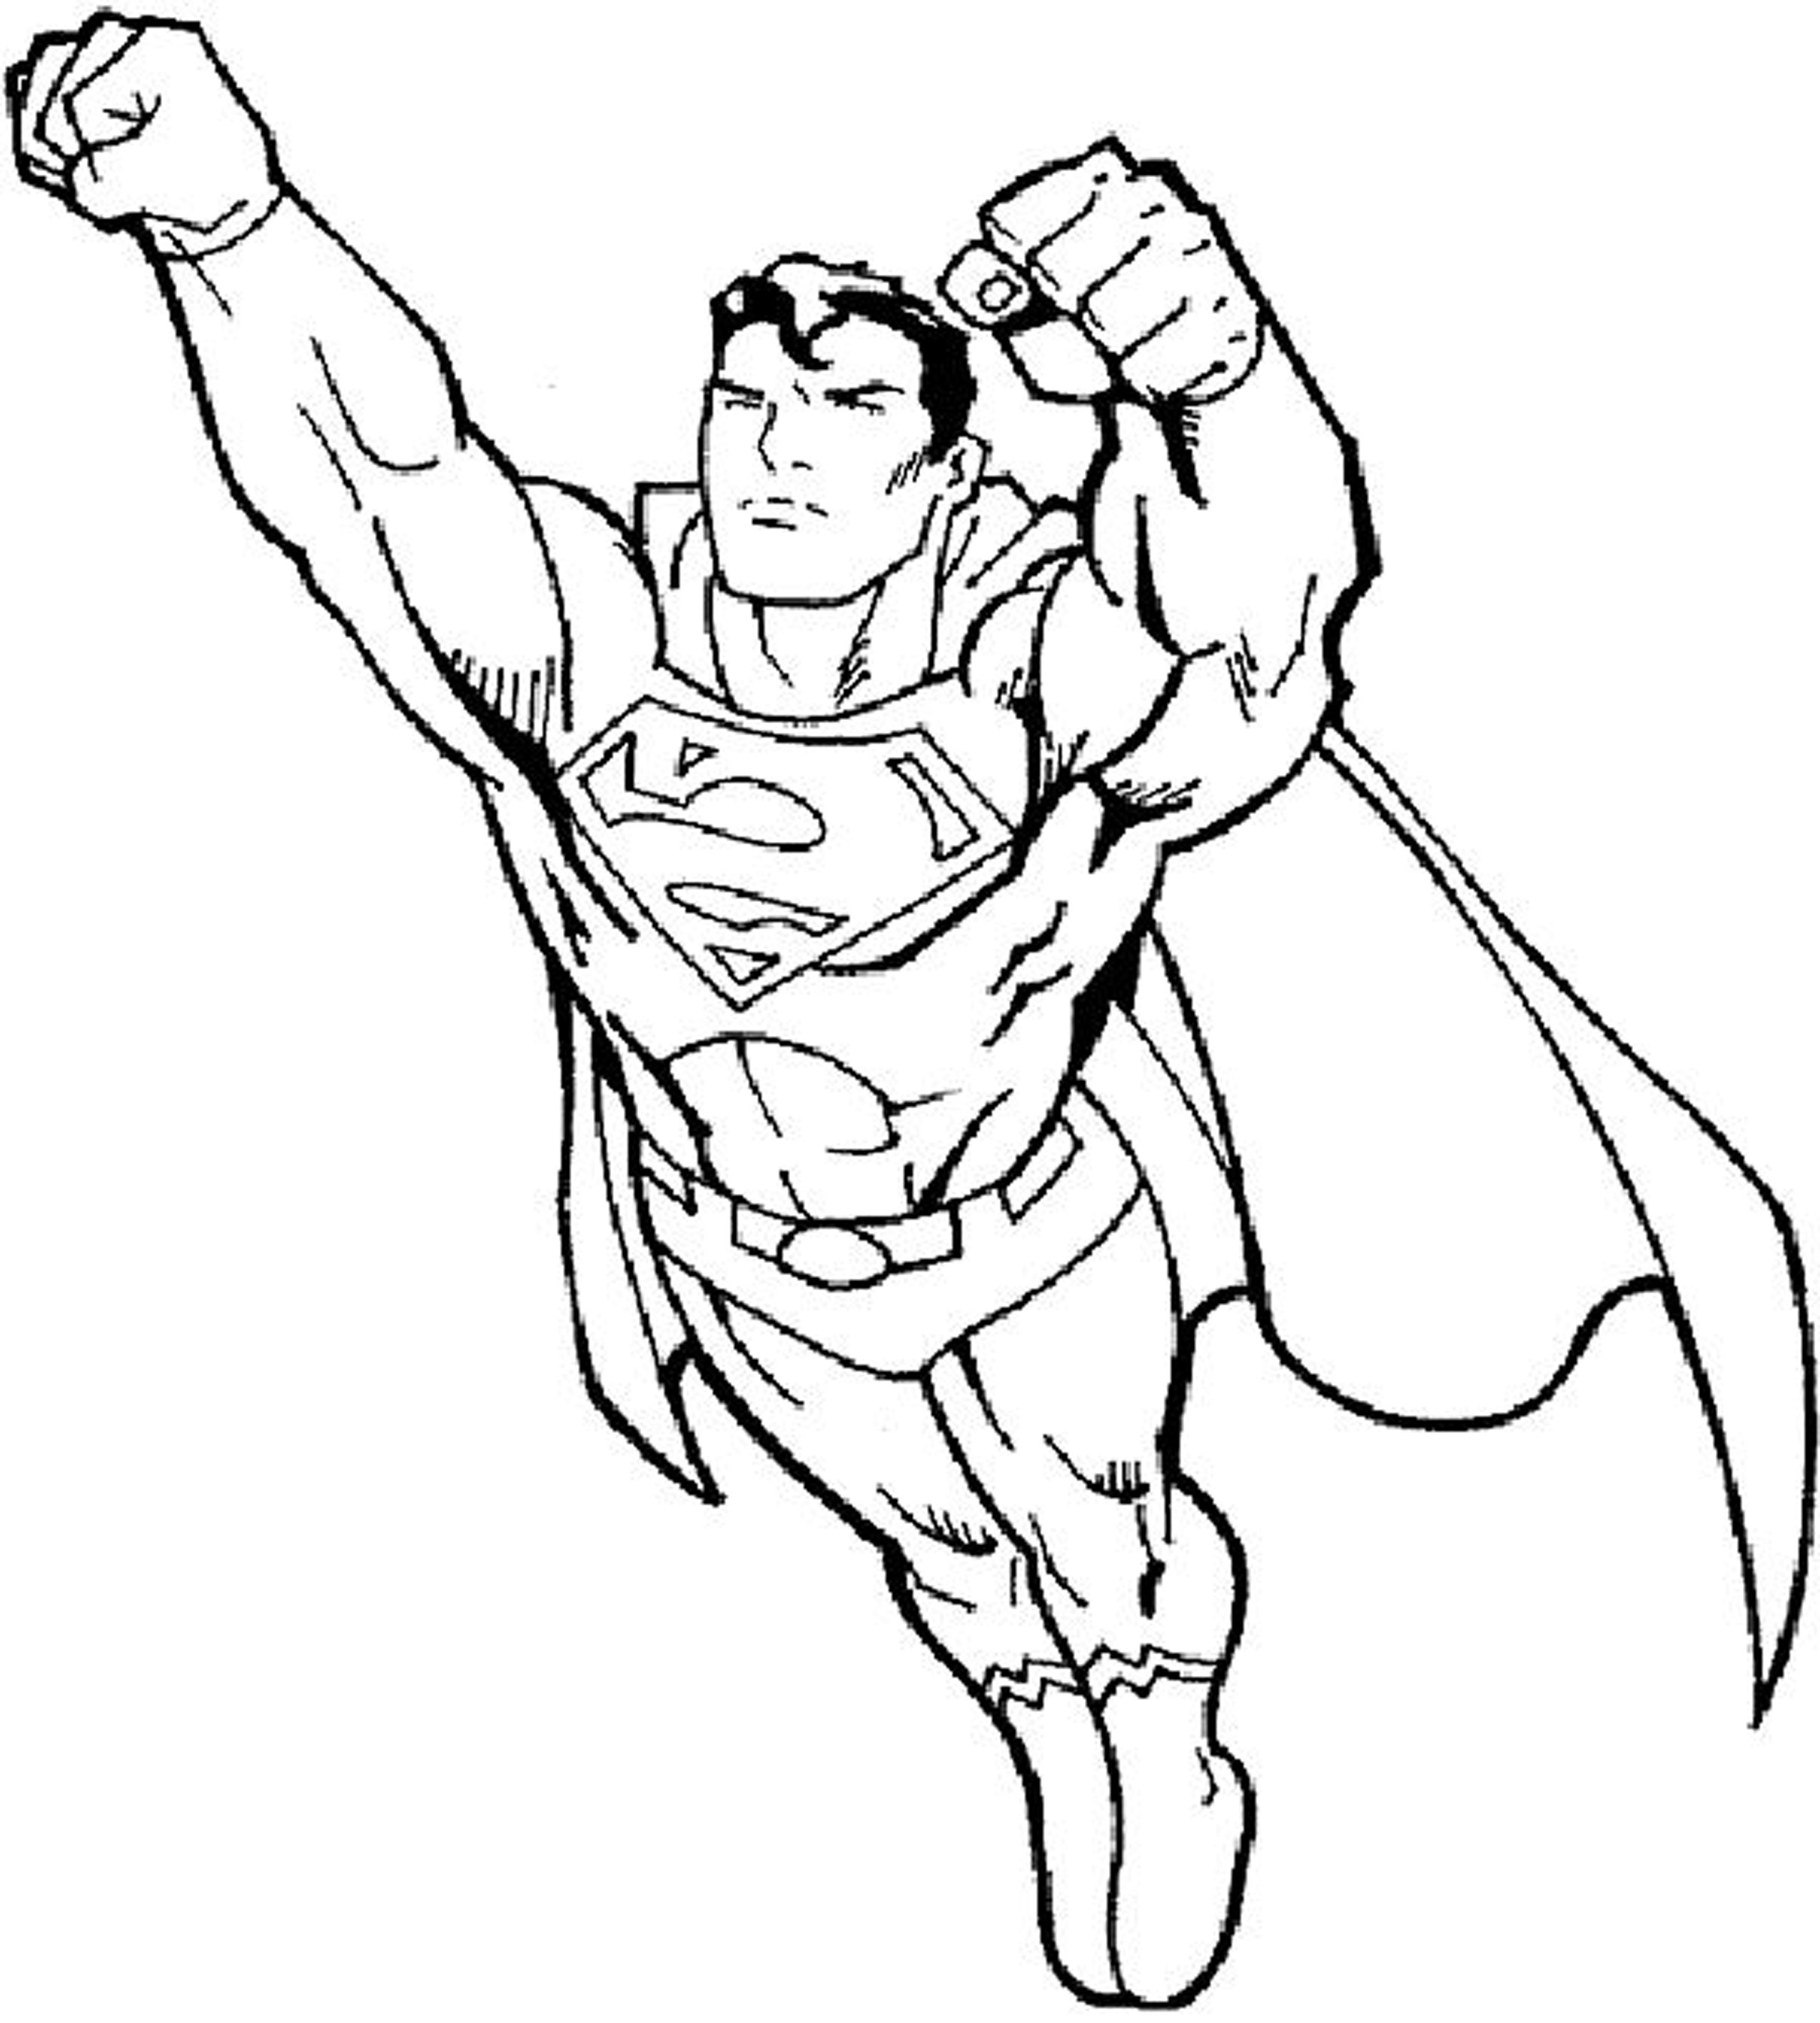 Superman Flying Coloring Pages at GetDrawings | Free download